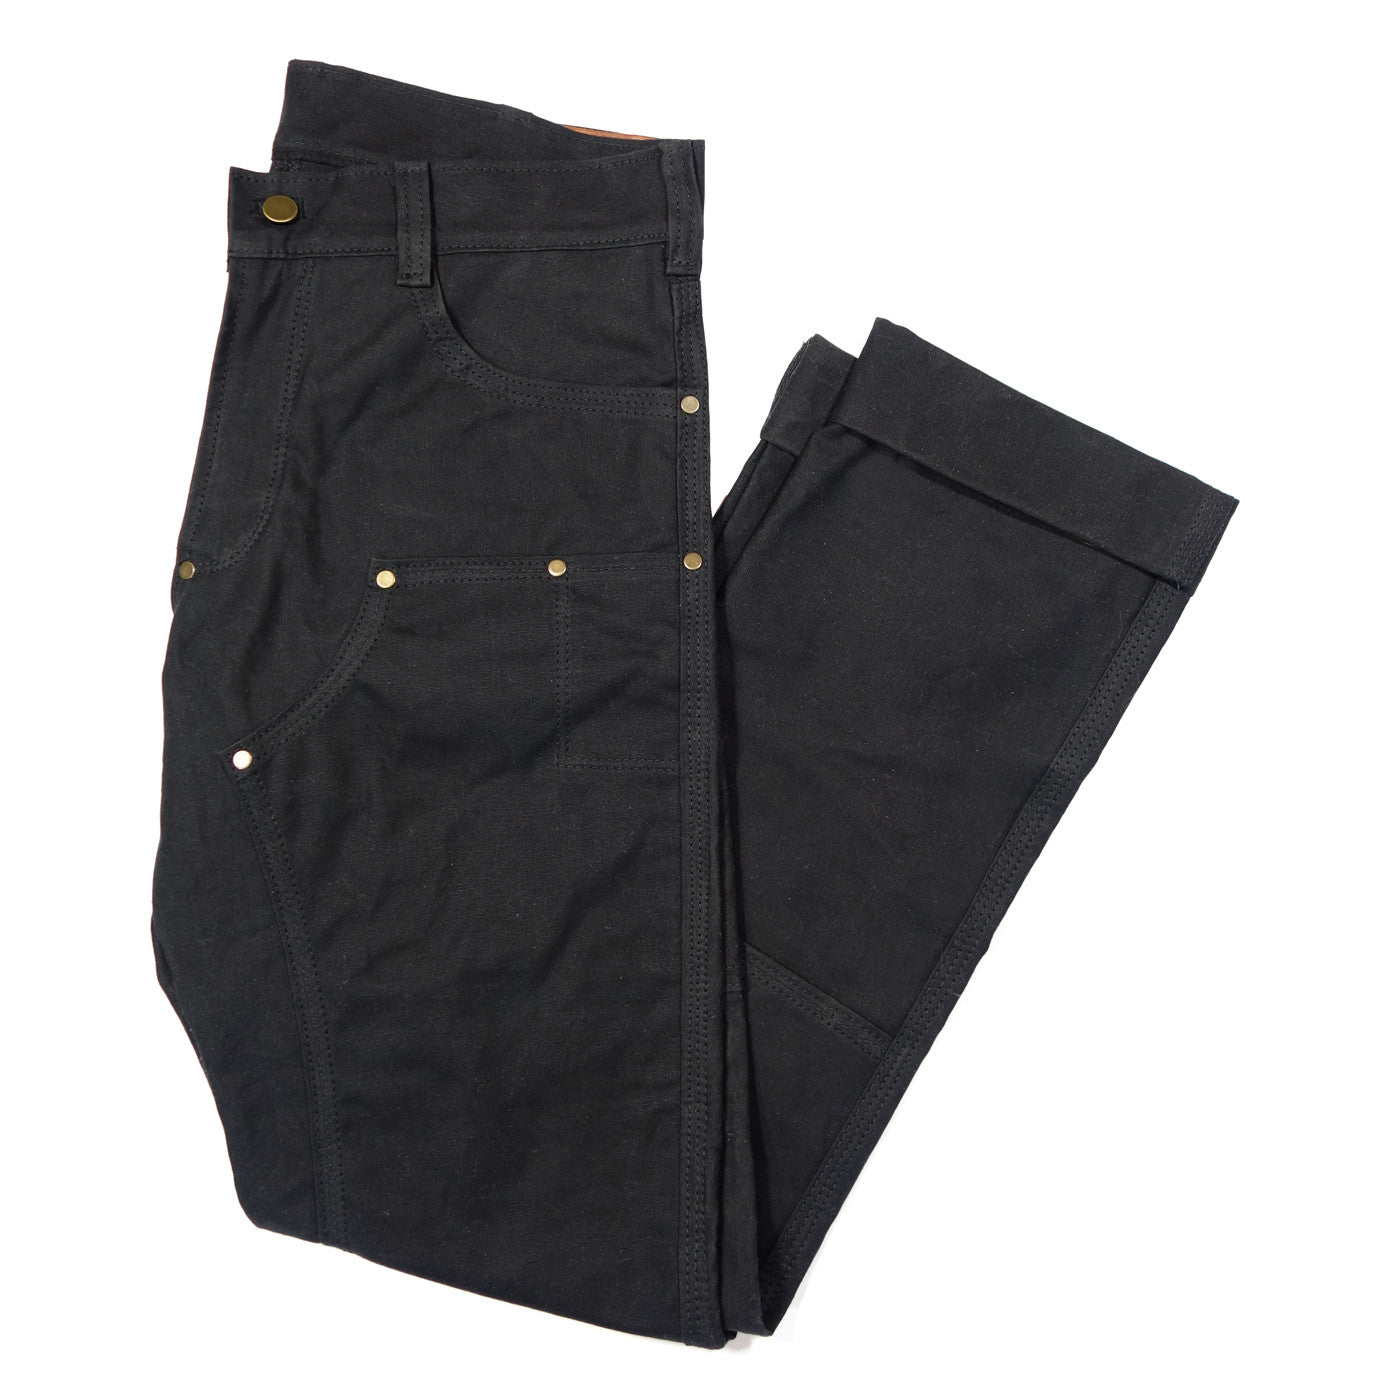 Waxed Canvas Work Pant, Fitted work pant, waxed canvas pants, pants made in usa, made in Portland Oregon, durable pants, best waxed canvas pants, slim fit work pant, red clouds pants, waxed cotton pants, pants made to last